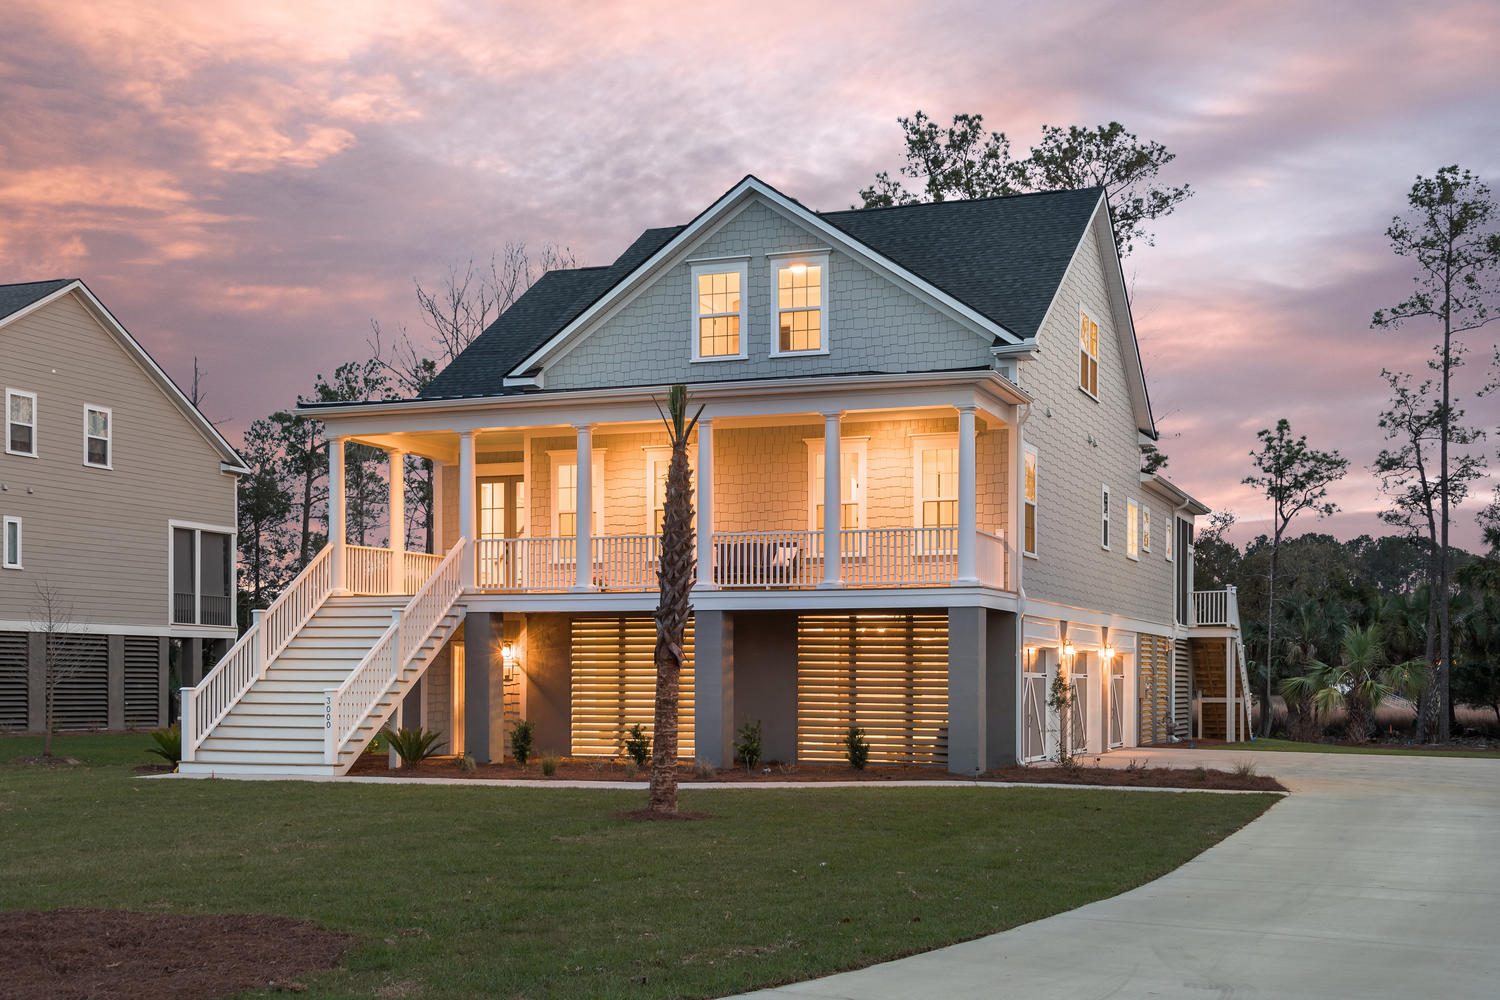 Dunes West Homes For Sale - 3000 Yachtsman, Mount Pleasant, SC - 0